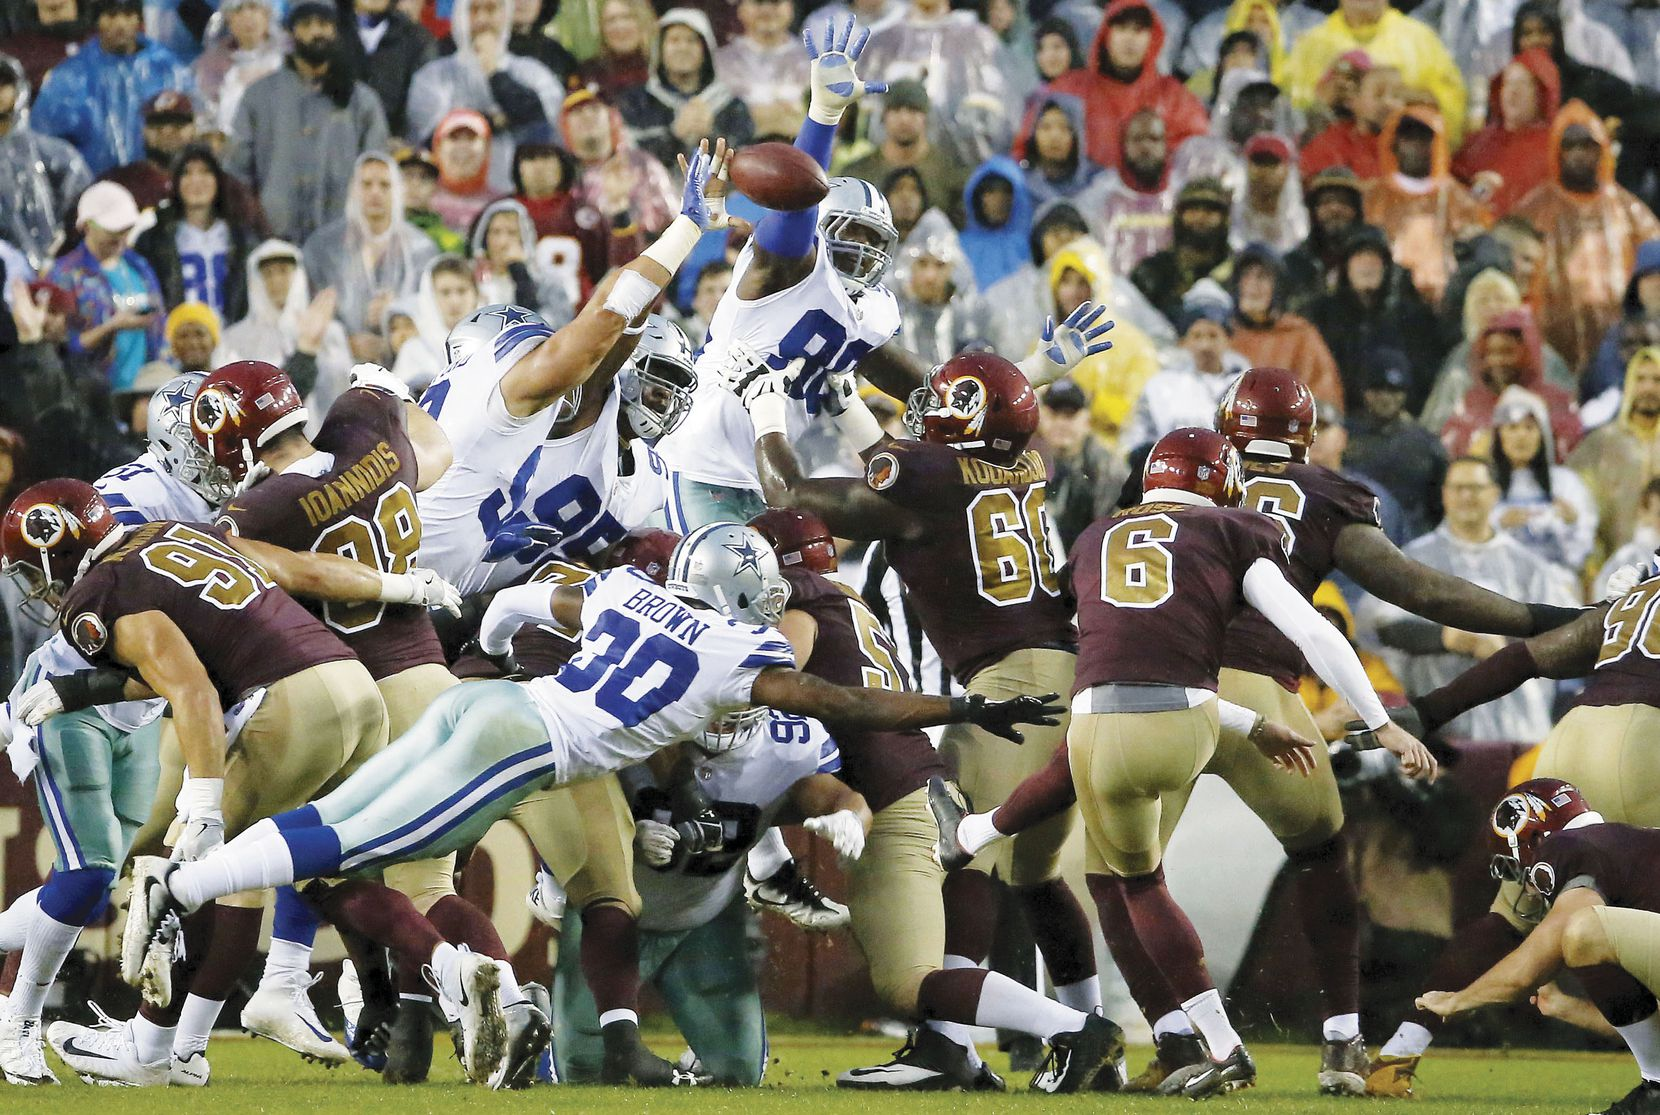 Dallas Cowboys defensive end Tyrone Crawford, with bandage on arm, blocks a field goal attempt by Washington Redskins kicker Nick Rose (6) during the second quarter at FedEx Field on Oct. 29.